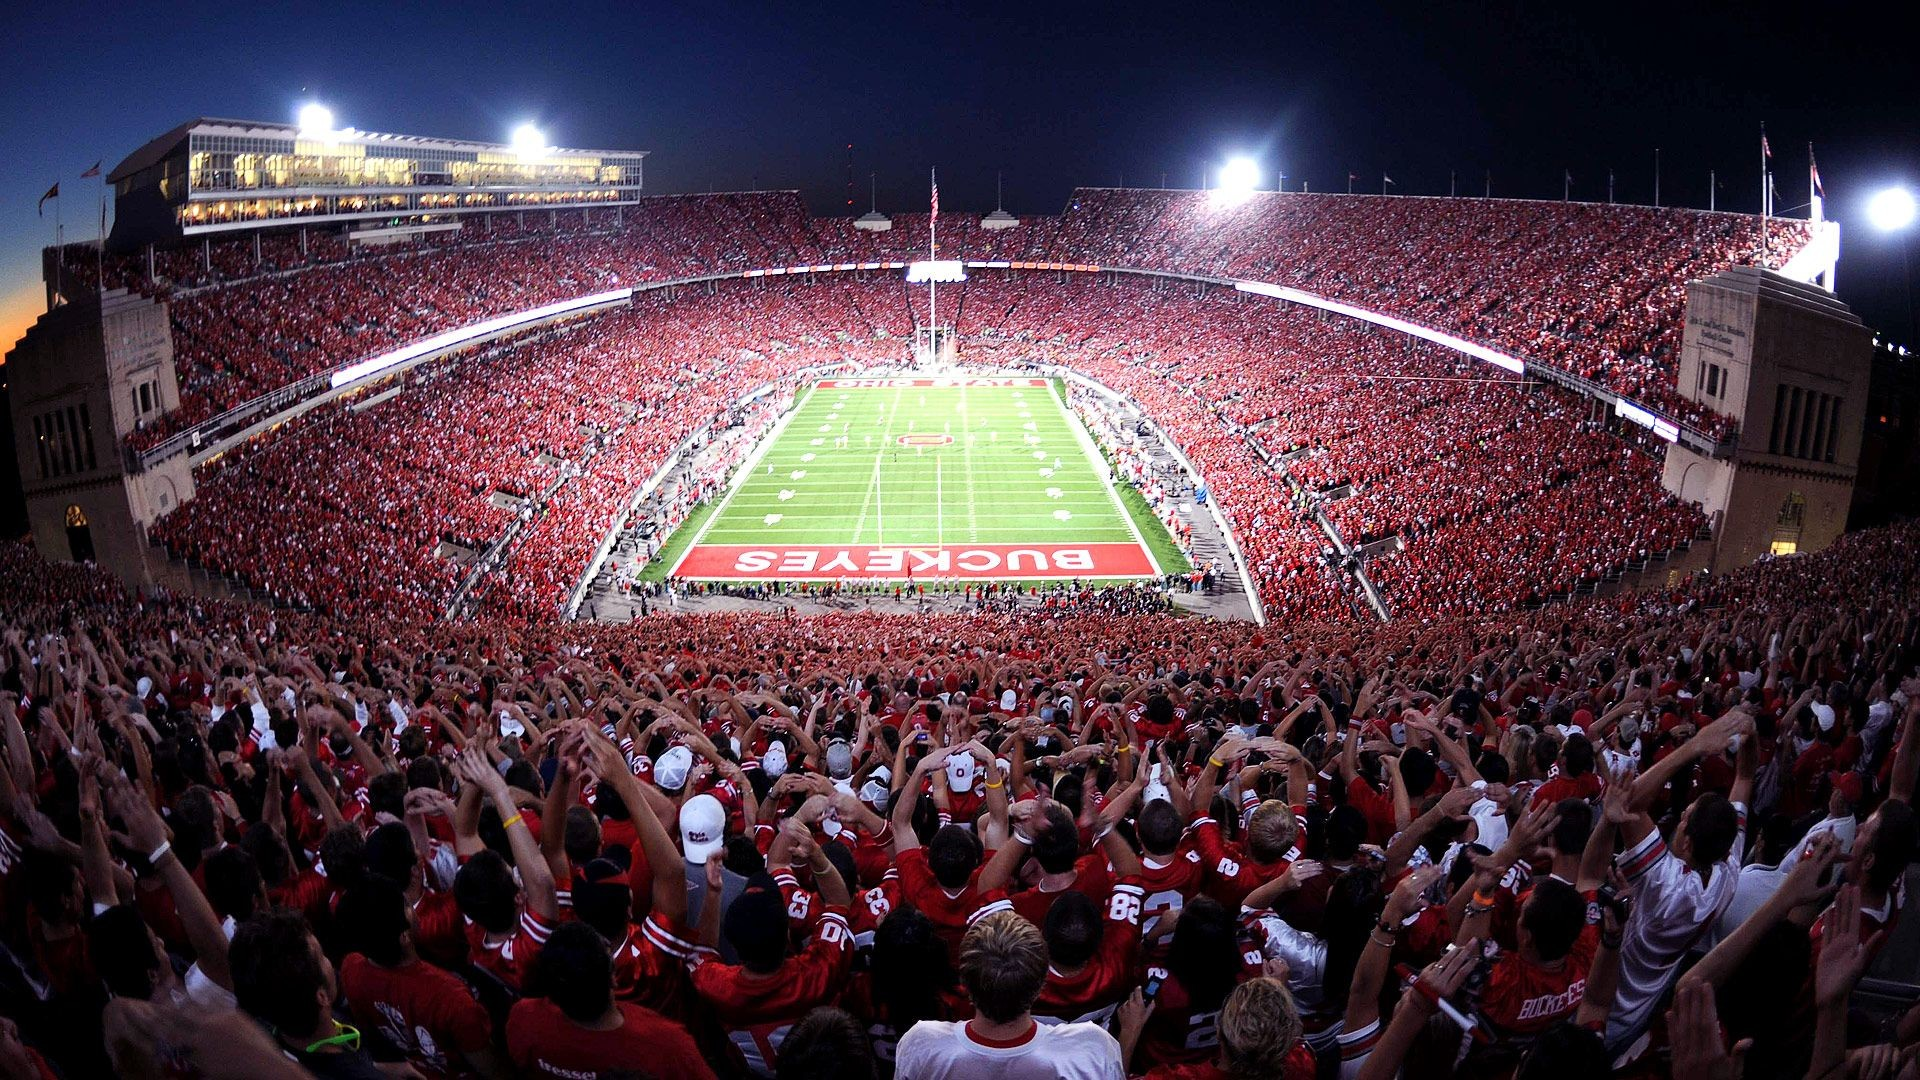 Ohio State Wallpaper 1920x1080 71 Images